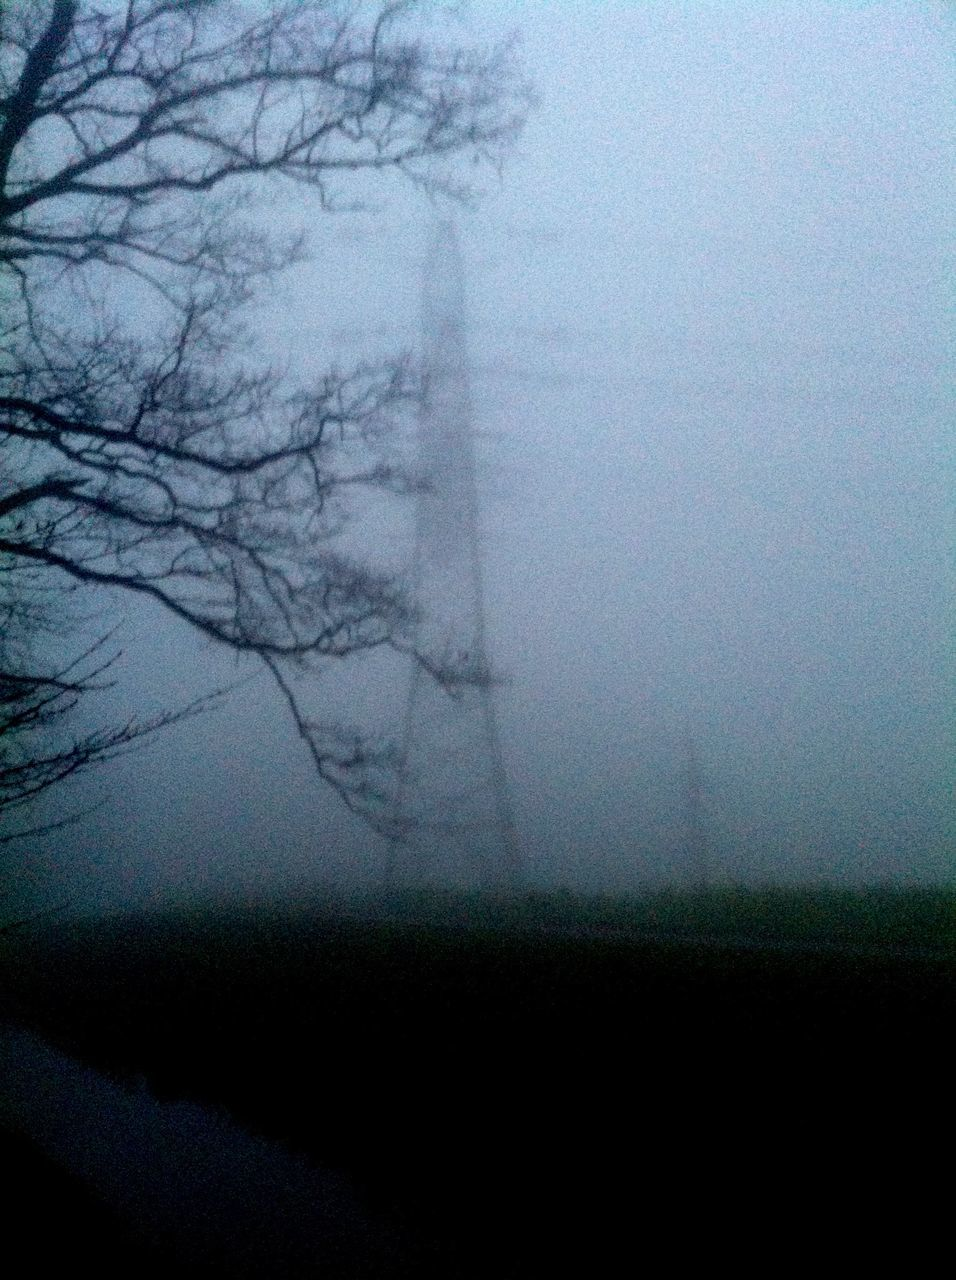 fog, landscape, mist, hazy, nature, foggy, no people, bare tree, tranquility, beauty in nature, scenics, tree, day, outdoors, sky